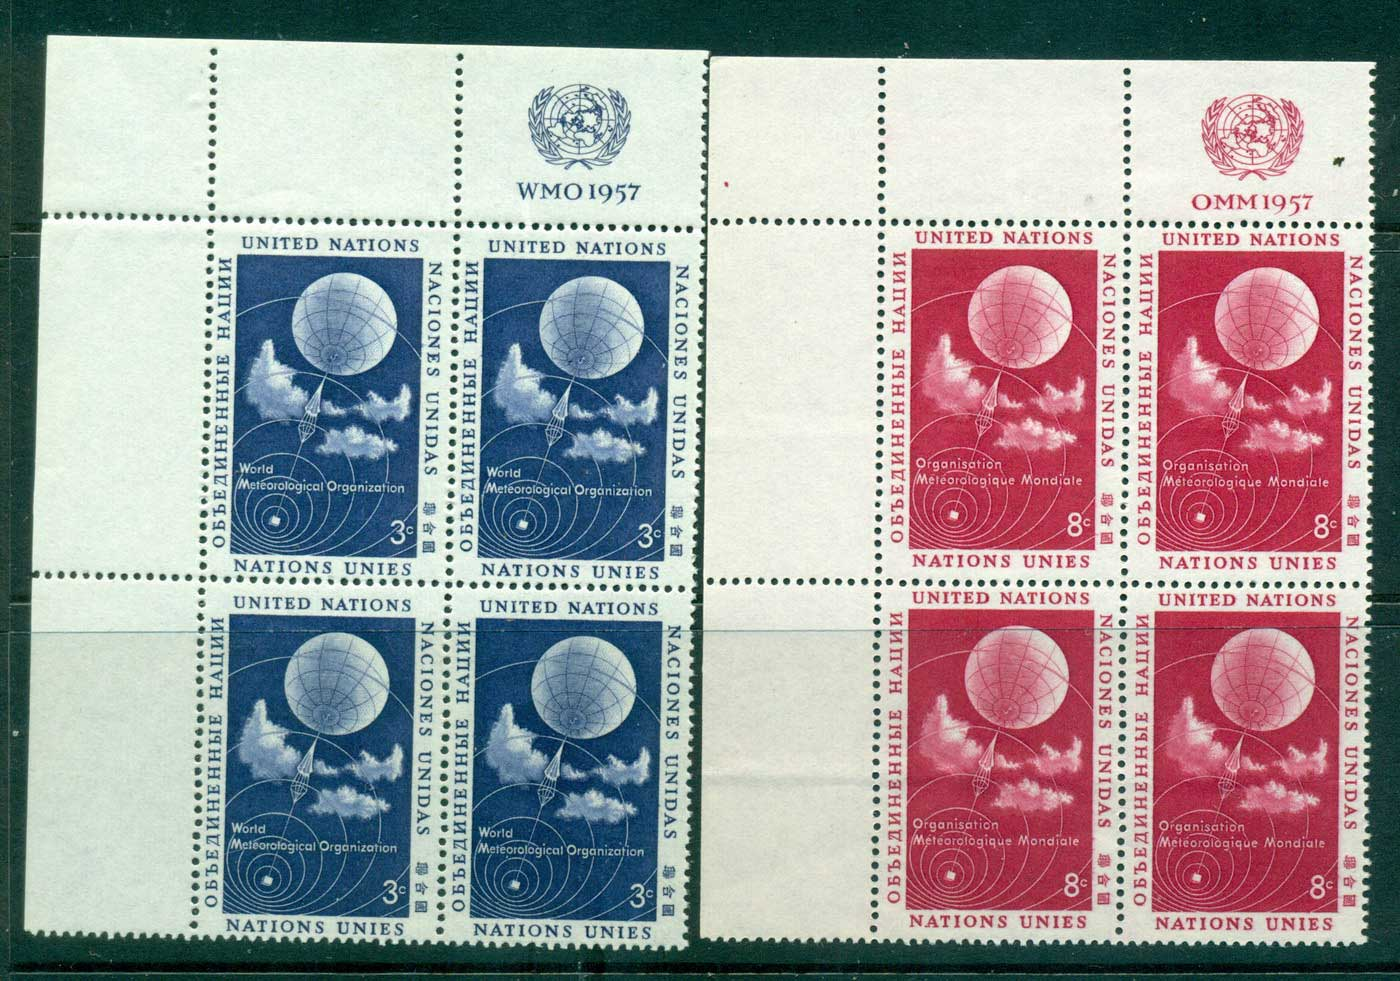 UN New York 1957 World Meterological Org. Imprint Blk 4 MUH lot40865